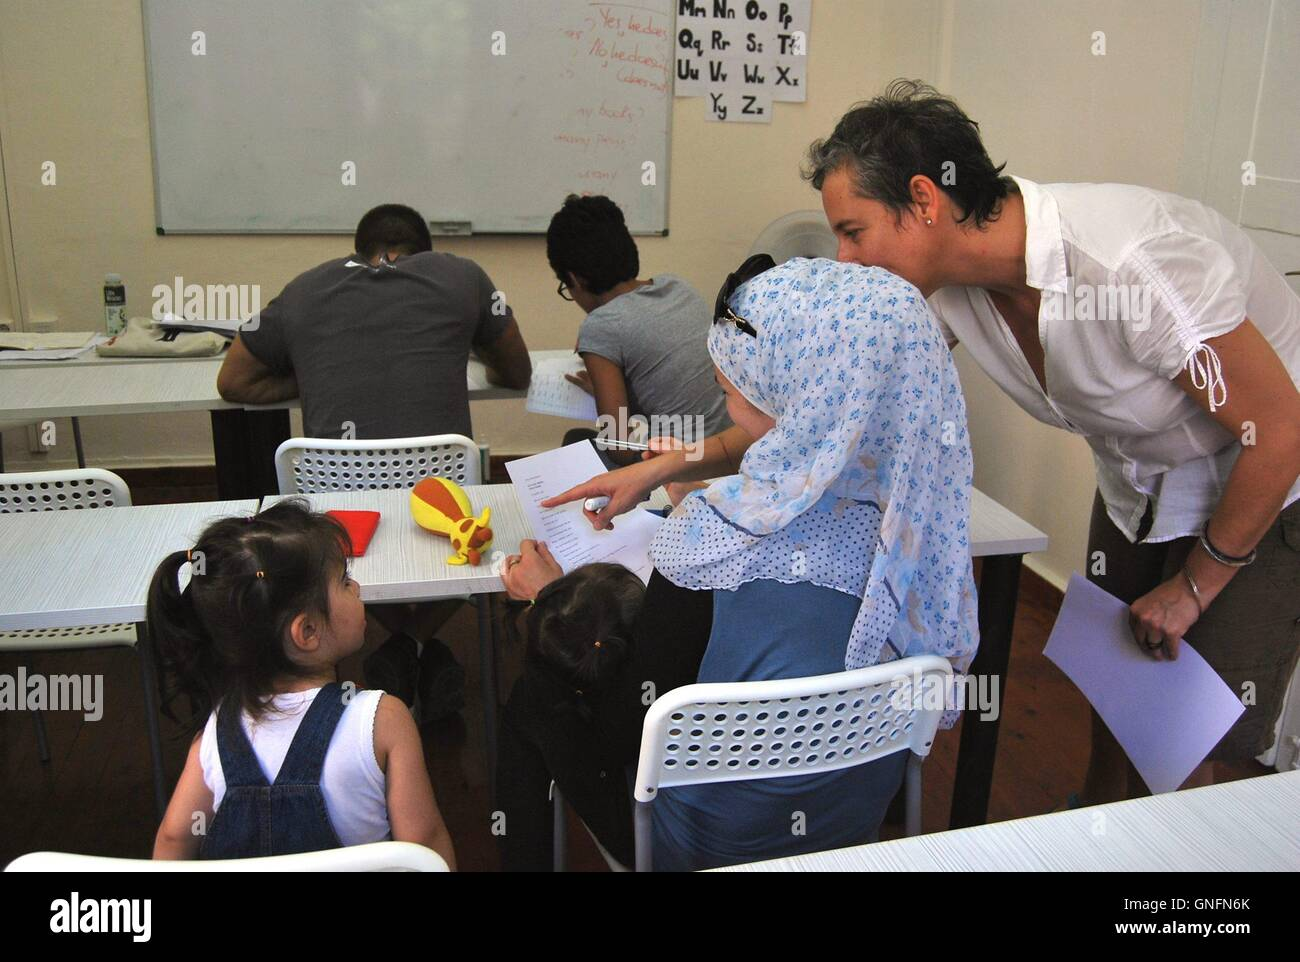 (160901) -- MYTILENE, Sept. 1, 2016 (Xinhua) -- An English teacher from the United States teaches refugees and immigrants - Stock Image